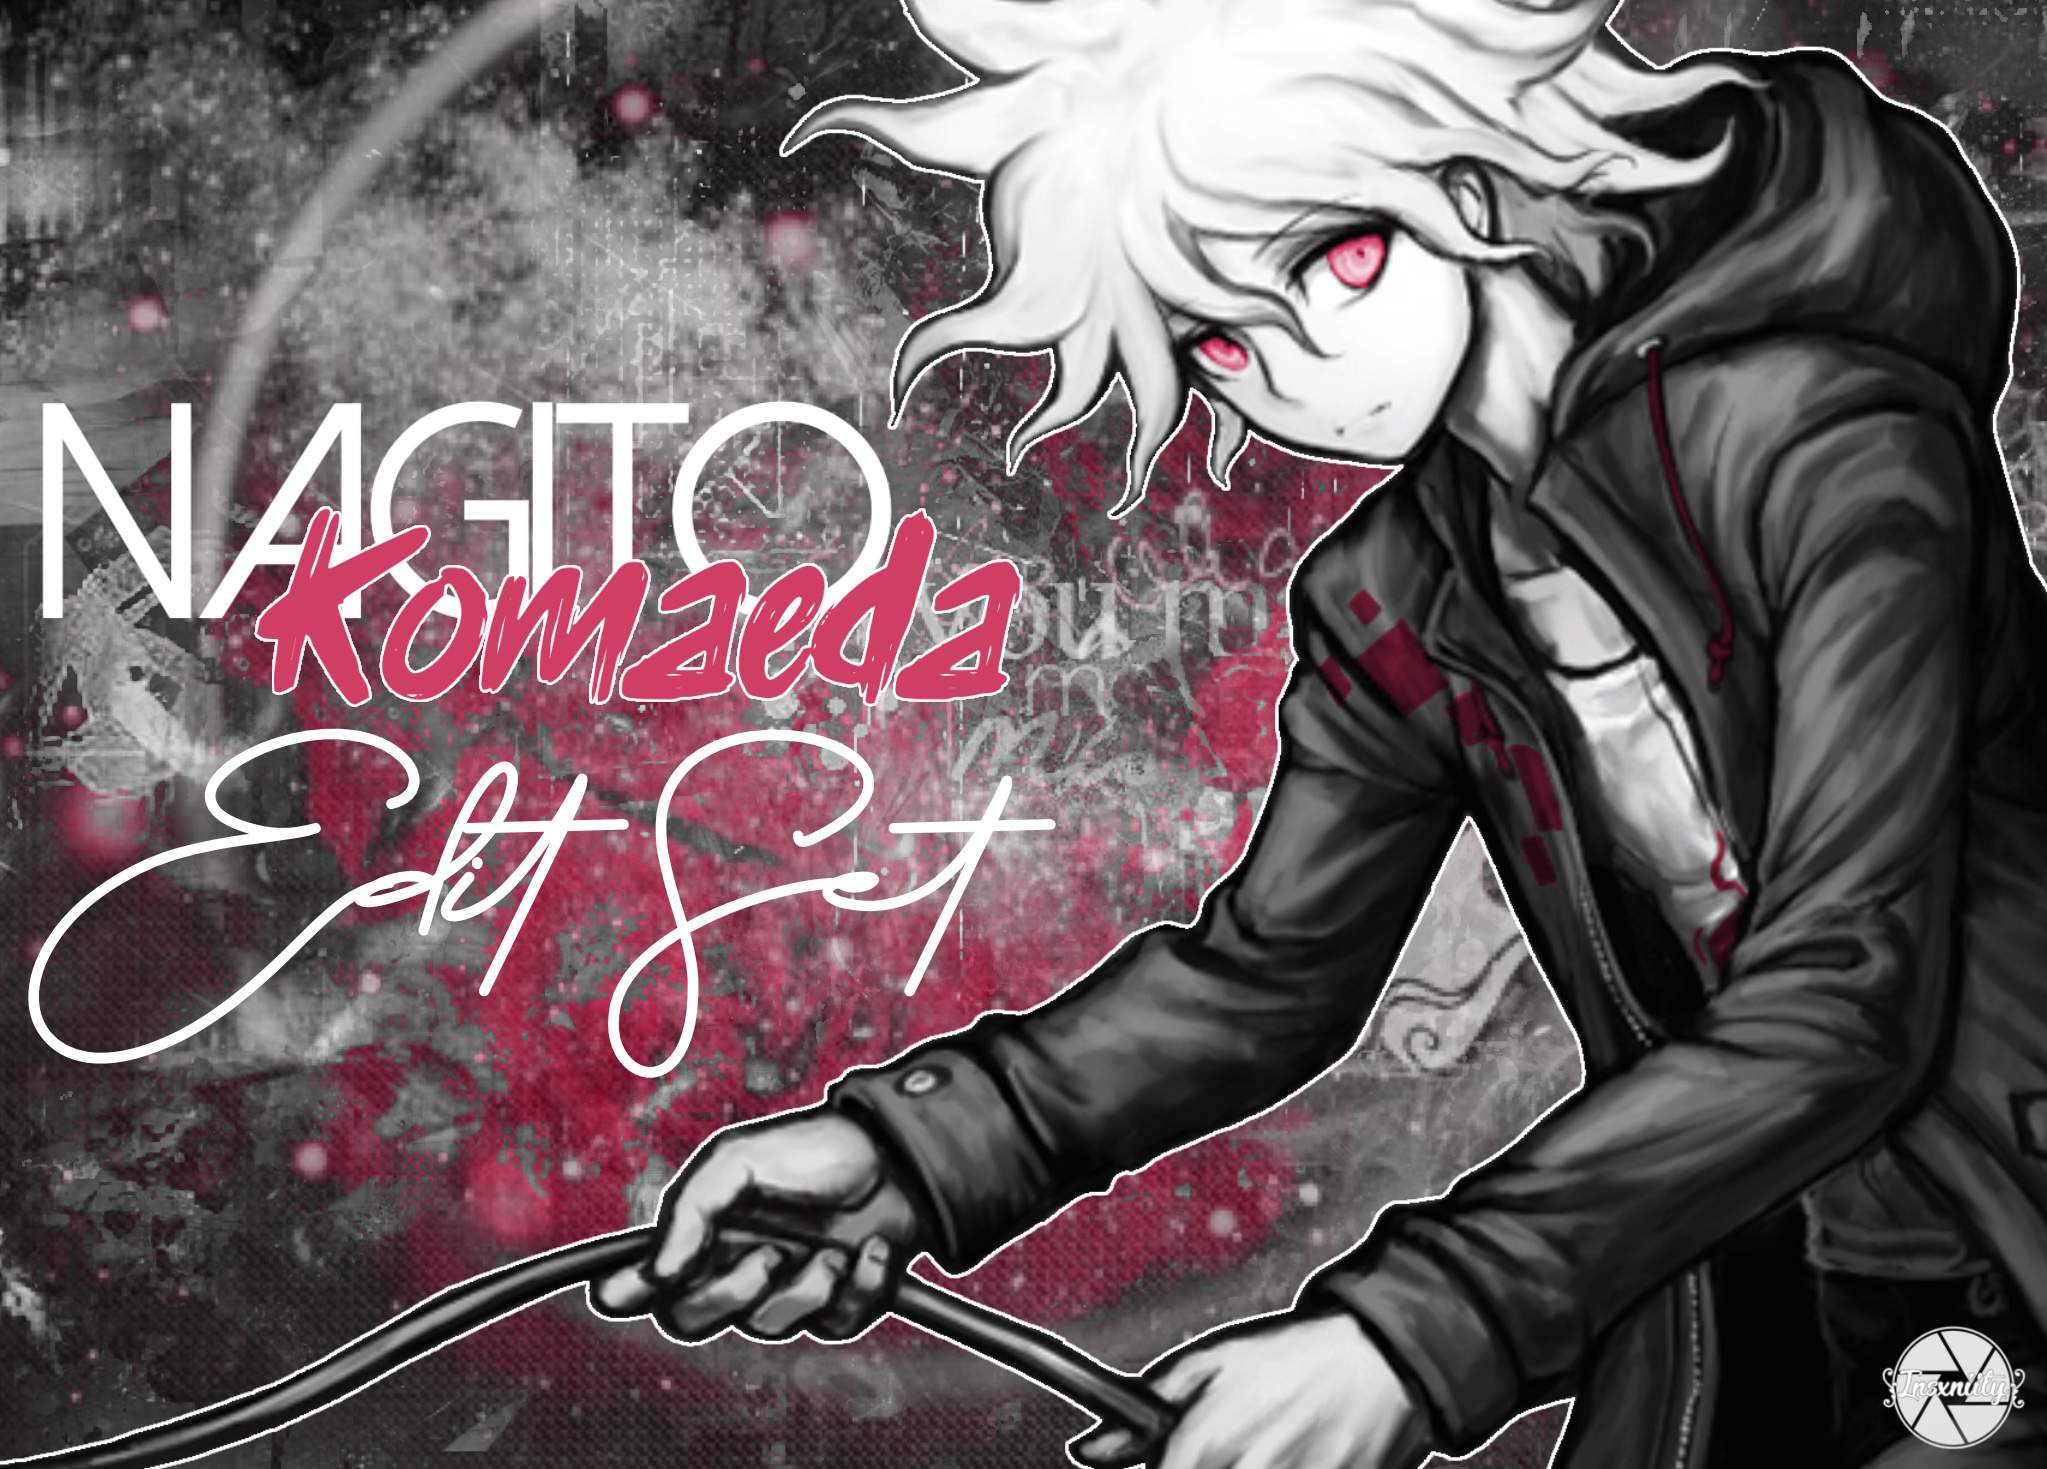 Monochrome edits of Nagito but they also have pink in them ...